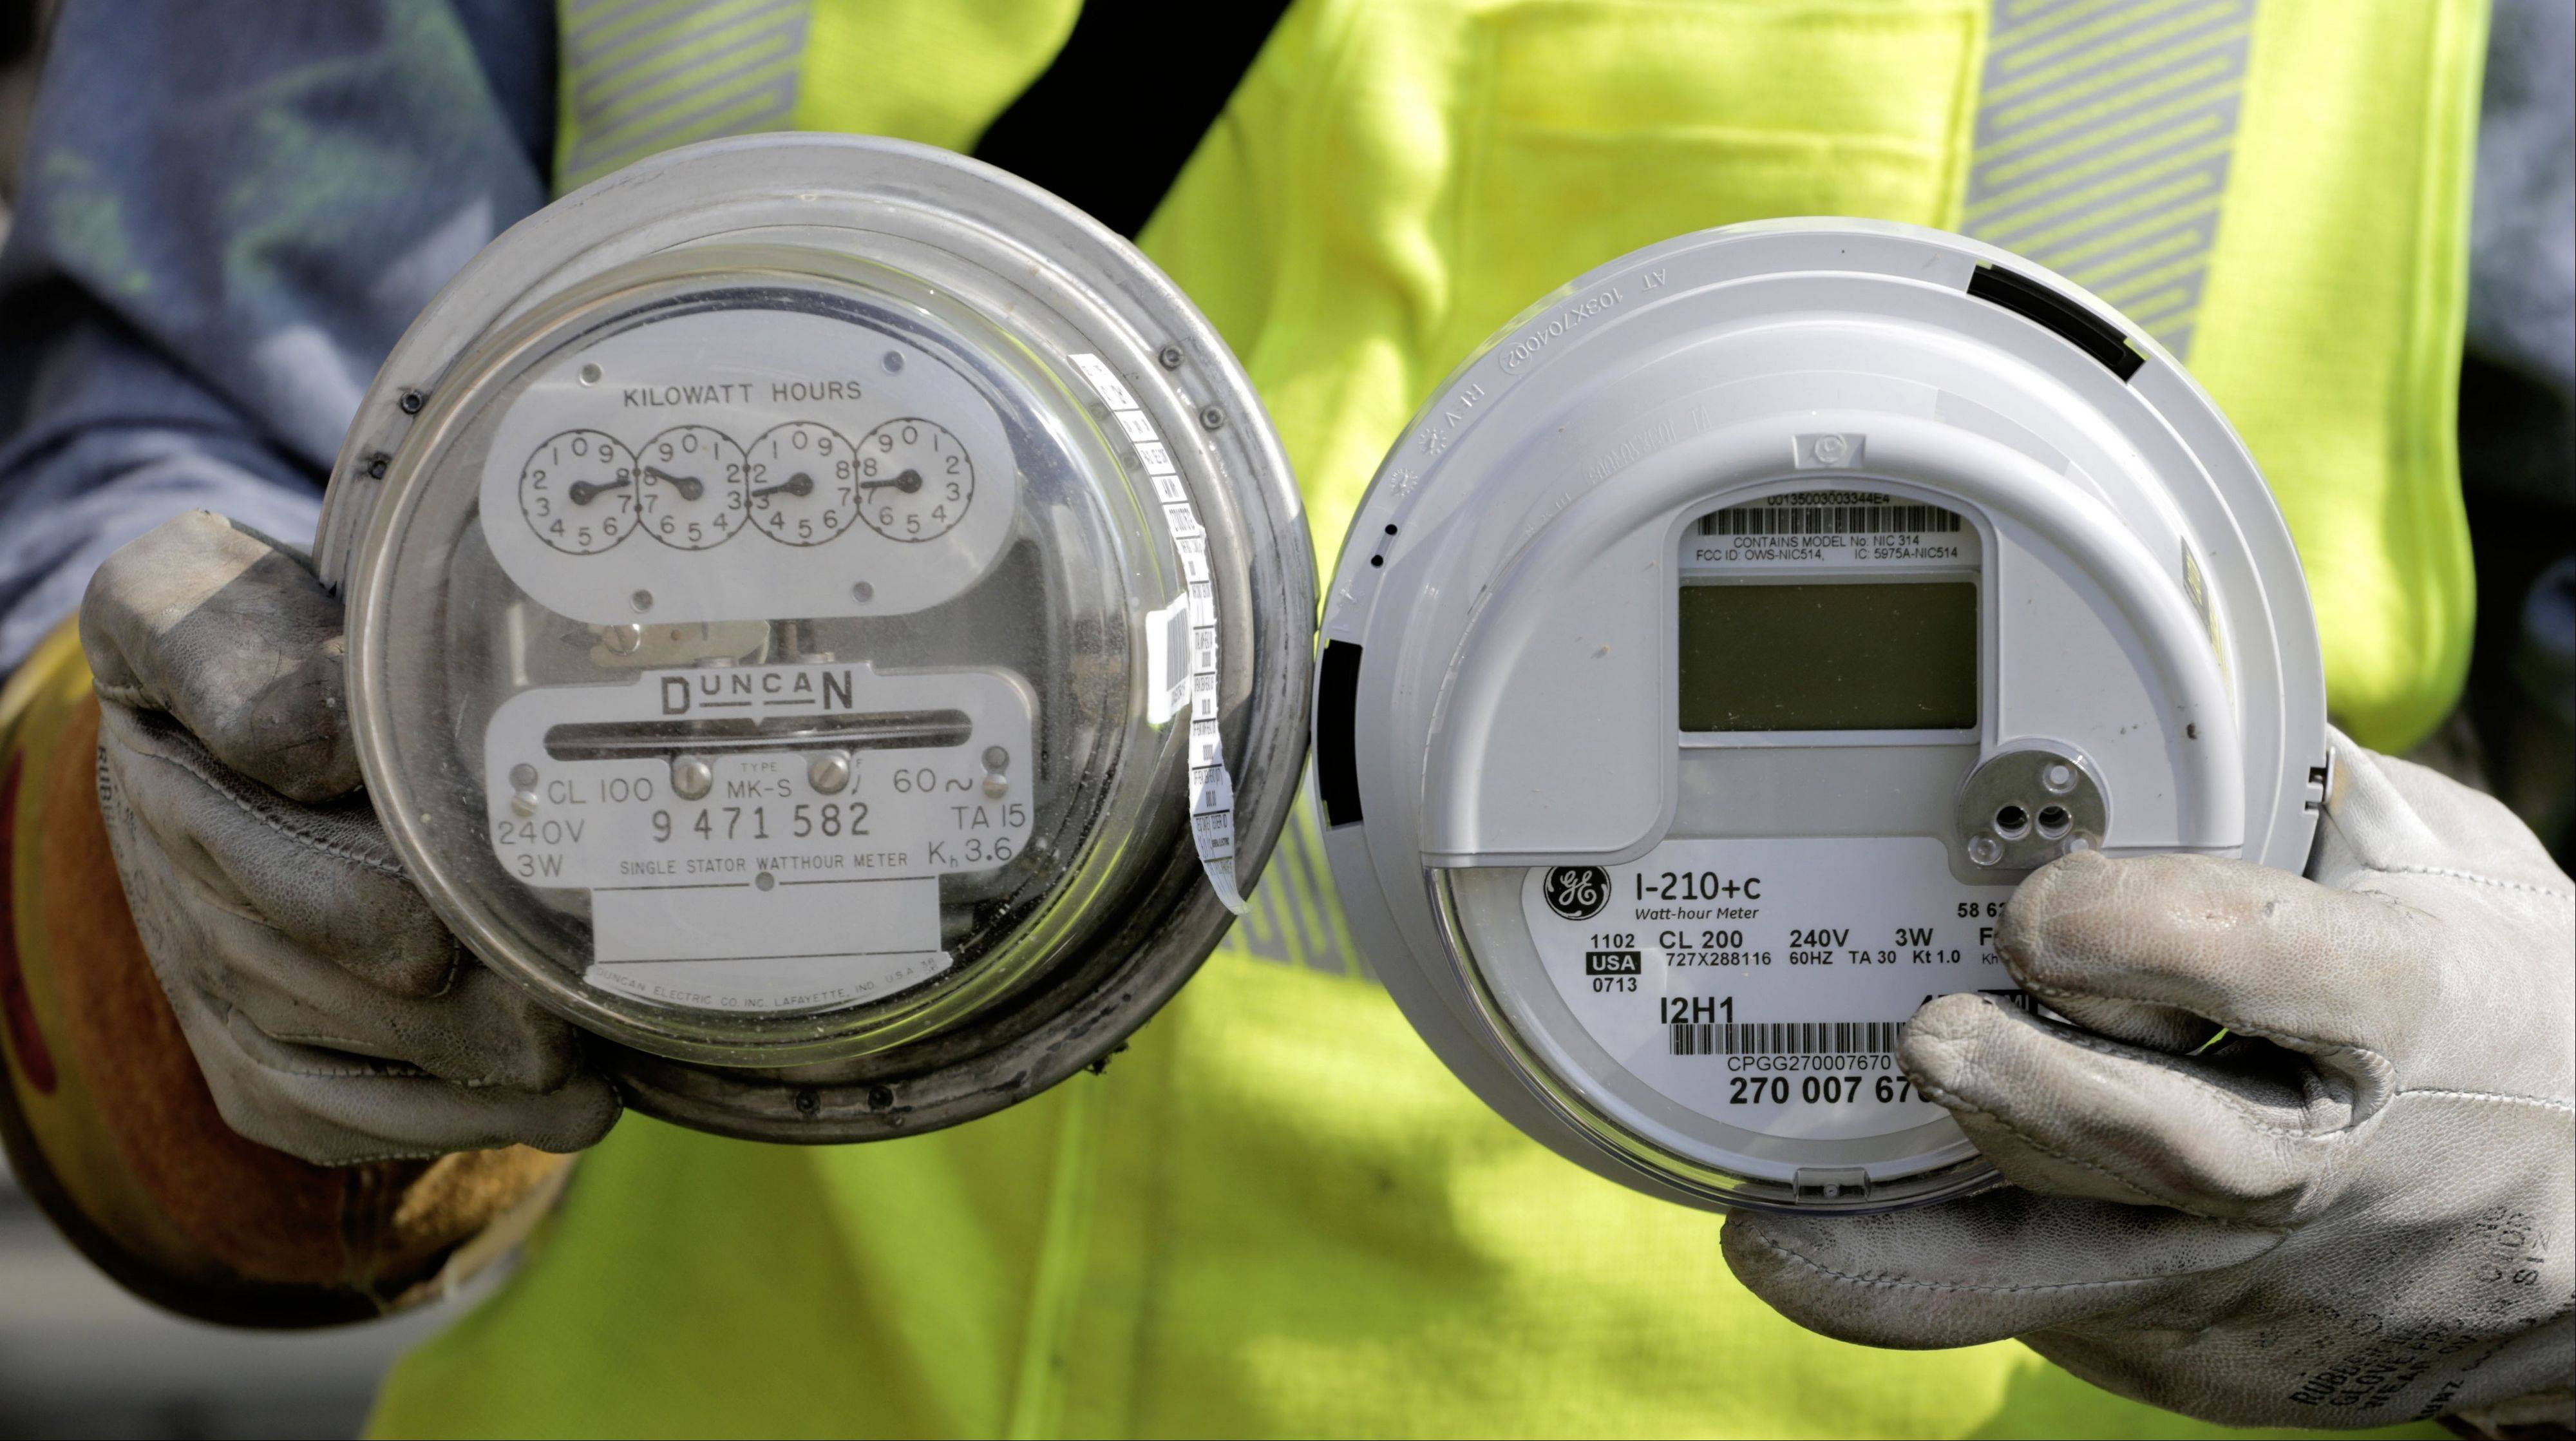 Brian Malloy, a senior energy technician for Commonwealth Edison, holds a standard electricity meter, left, and a new �smart� meter. The new meter is a wireless devices that relays information on electricity consumption directly to the utility.